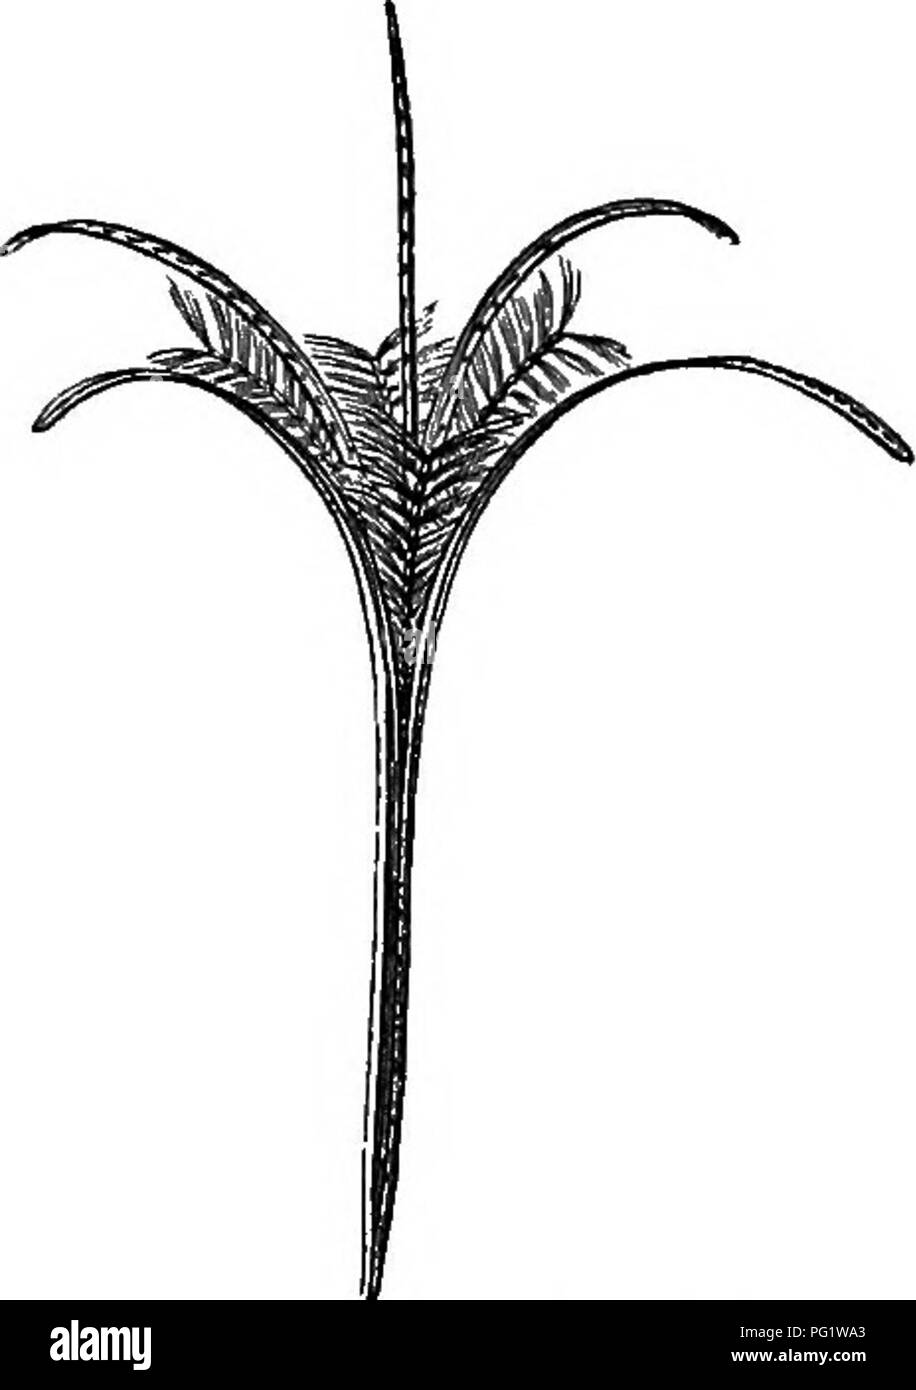 . The natural history of plants. Botany. Fig. 434. Flower. Fig. 435. Dehiscing fruit. Epilolium tpicatum.. Please note that these images are extracted from scanned page images that may have been digitally enhanced for readability - coloration and appearance of these illustrations may not perfectly resemble the original work.. Baillon, Henri Ernest, 1827-1895; Hartog, Marcus Manuel, 1851-. London, L. Reeve & Co. - Stock Image